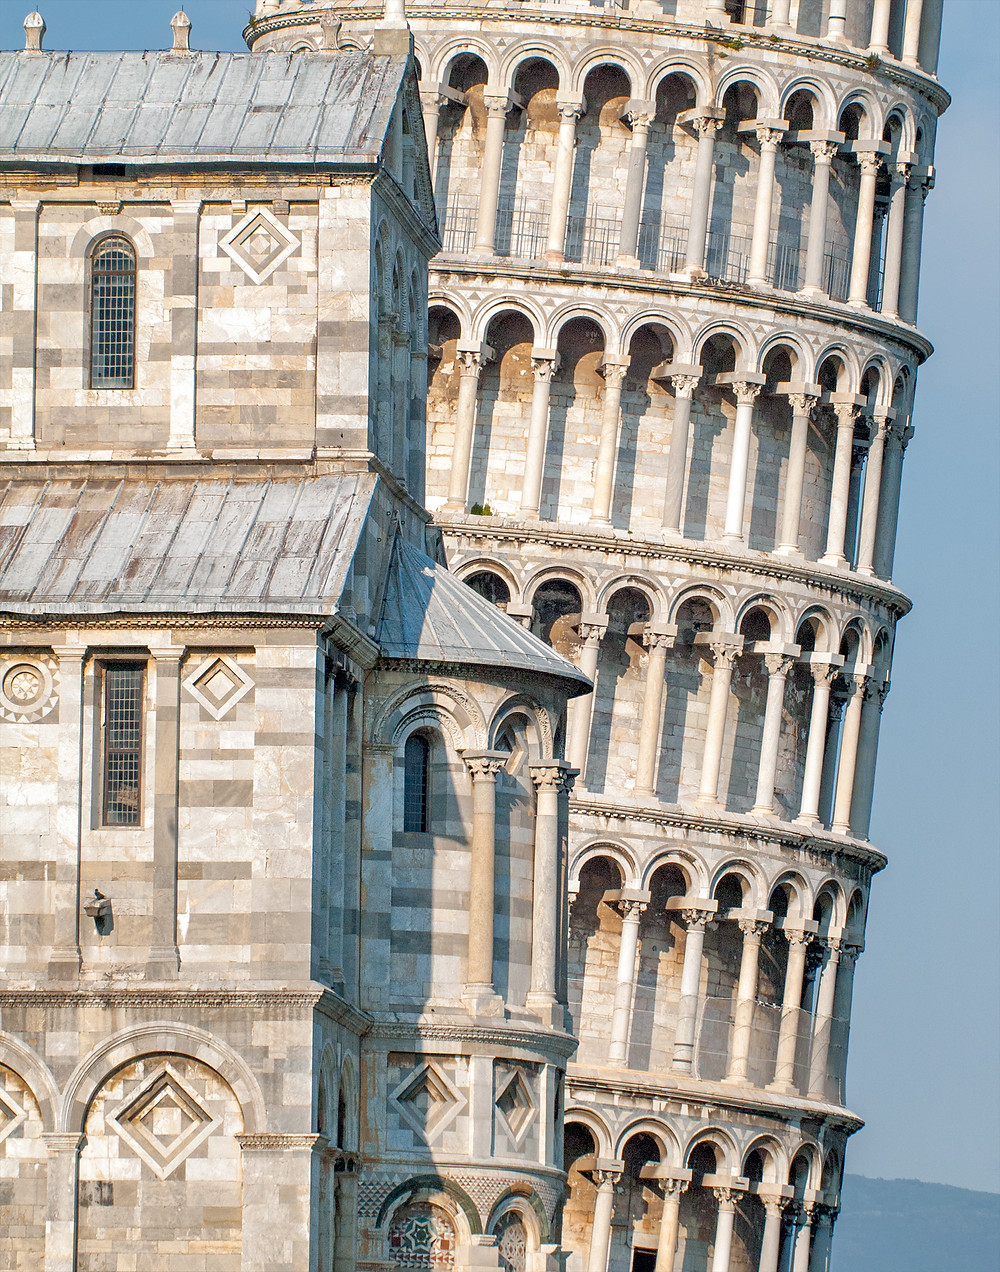 the Leaning Tower of Pisa, peaking out from the right side of the Duomo